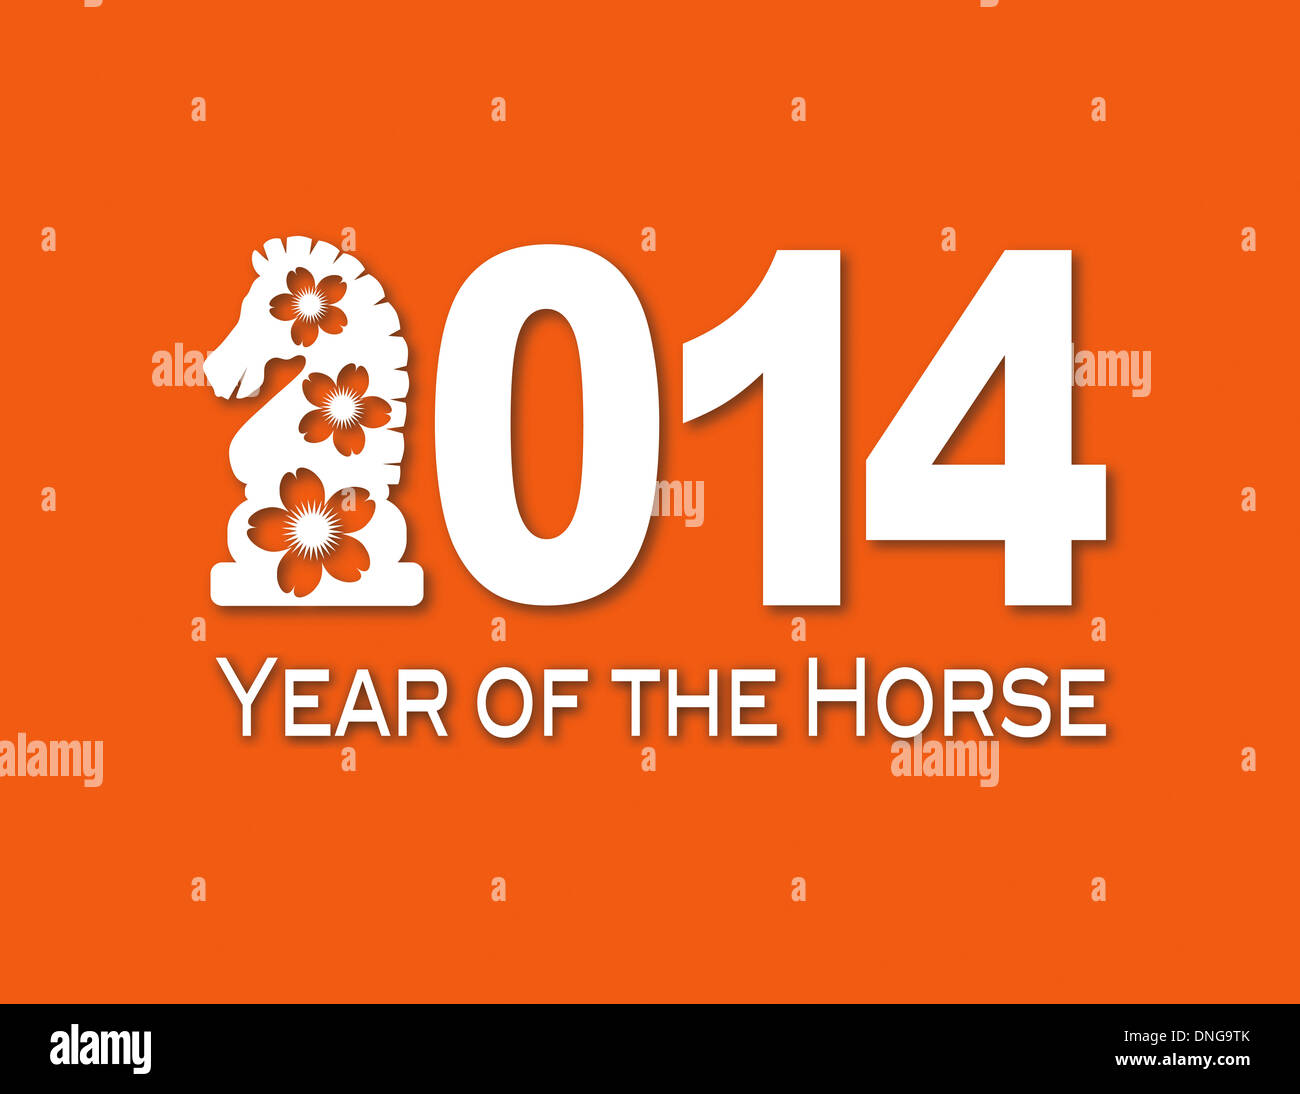 2014 chinese lunar new year of the horse numerals with horse text 2014 chinese lunar new year of the horse numerals with horse text symbol white paper cut out on orange background illustration buycottarizona